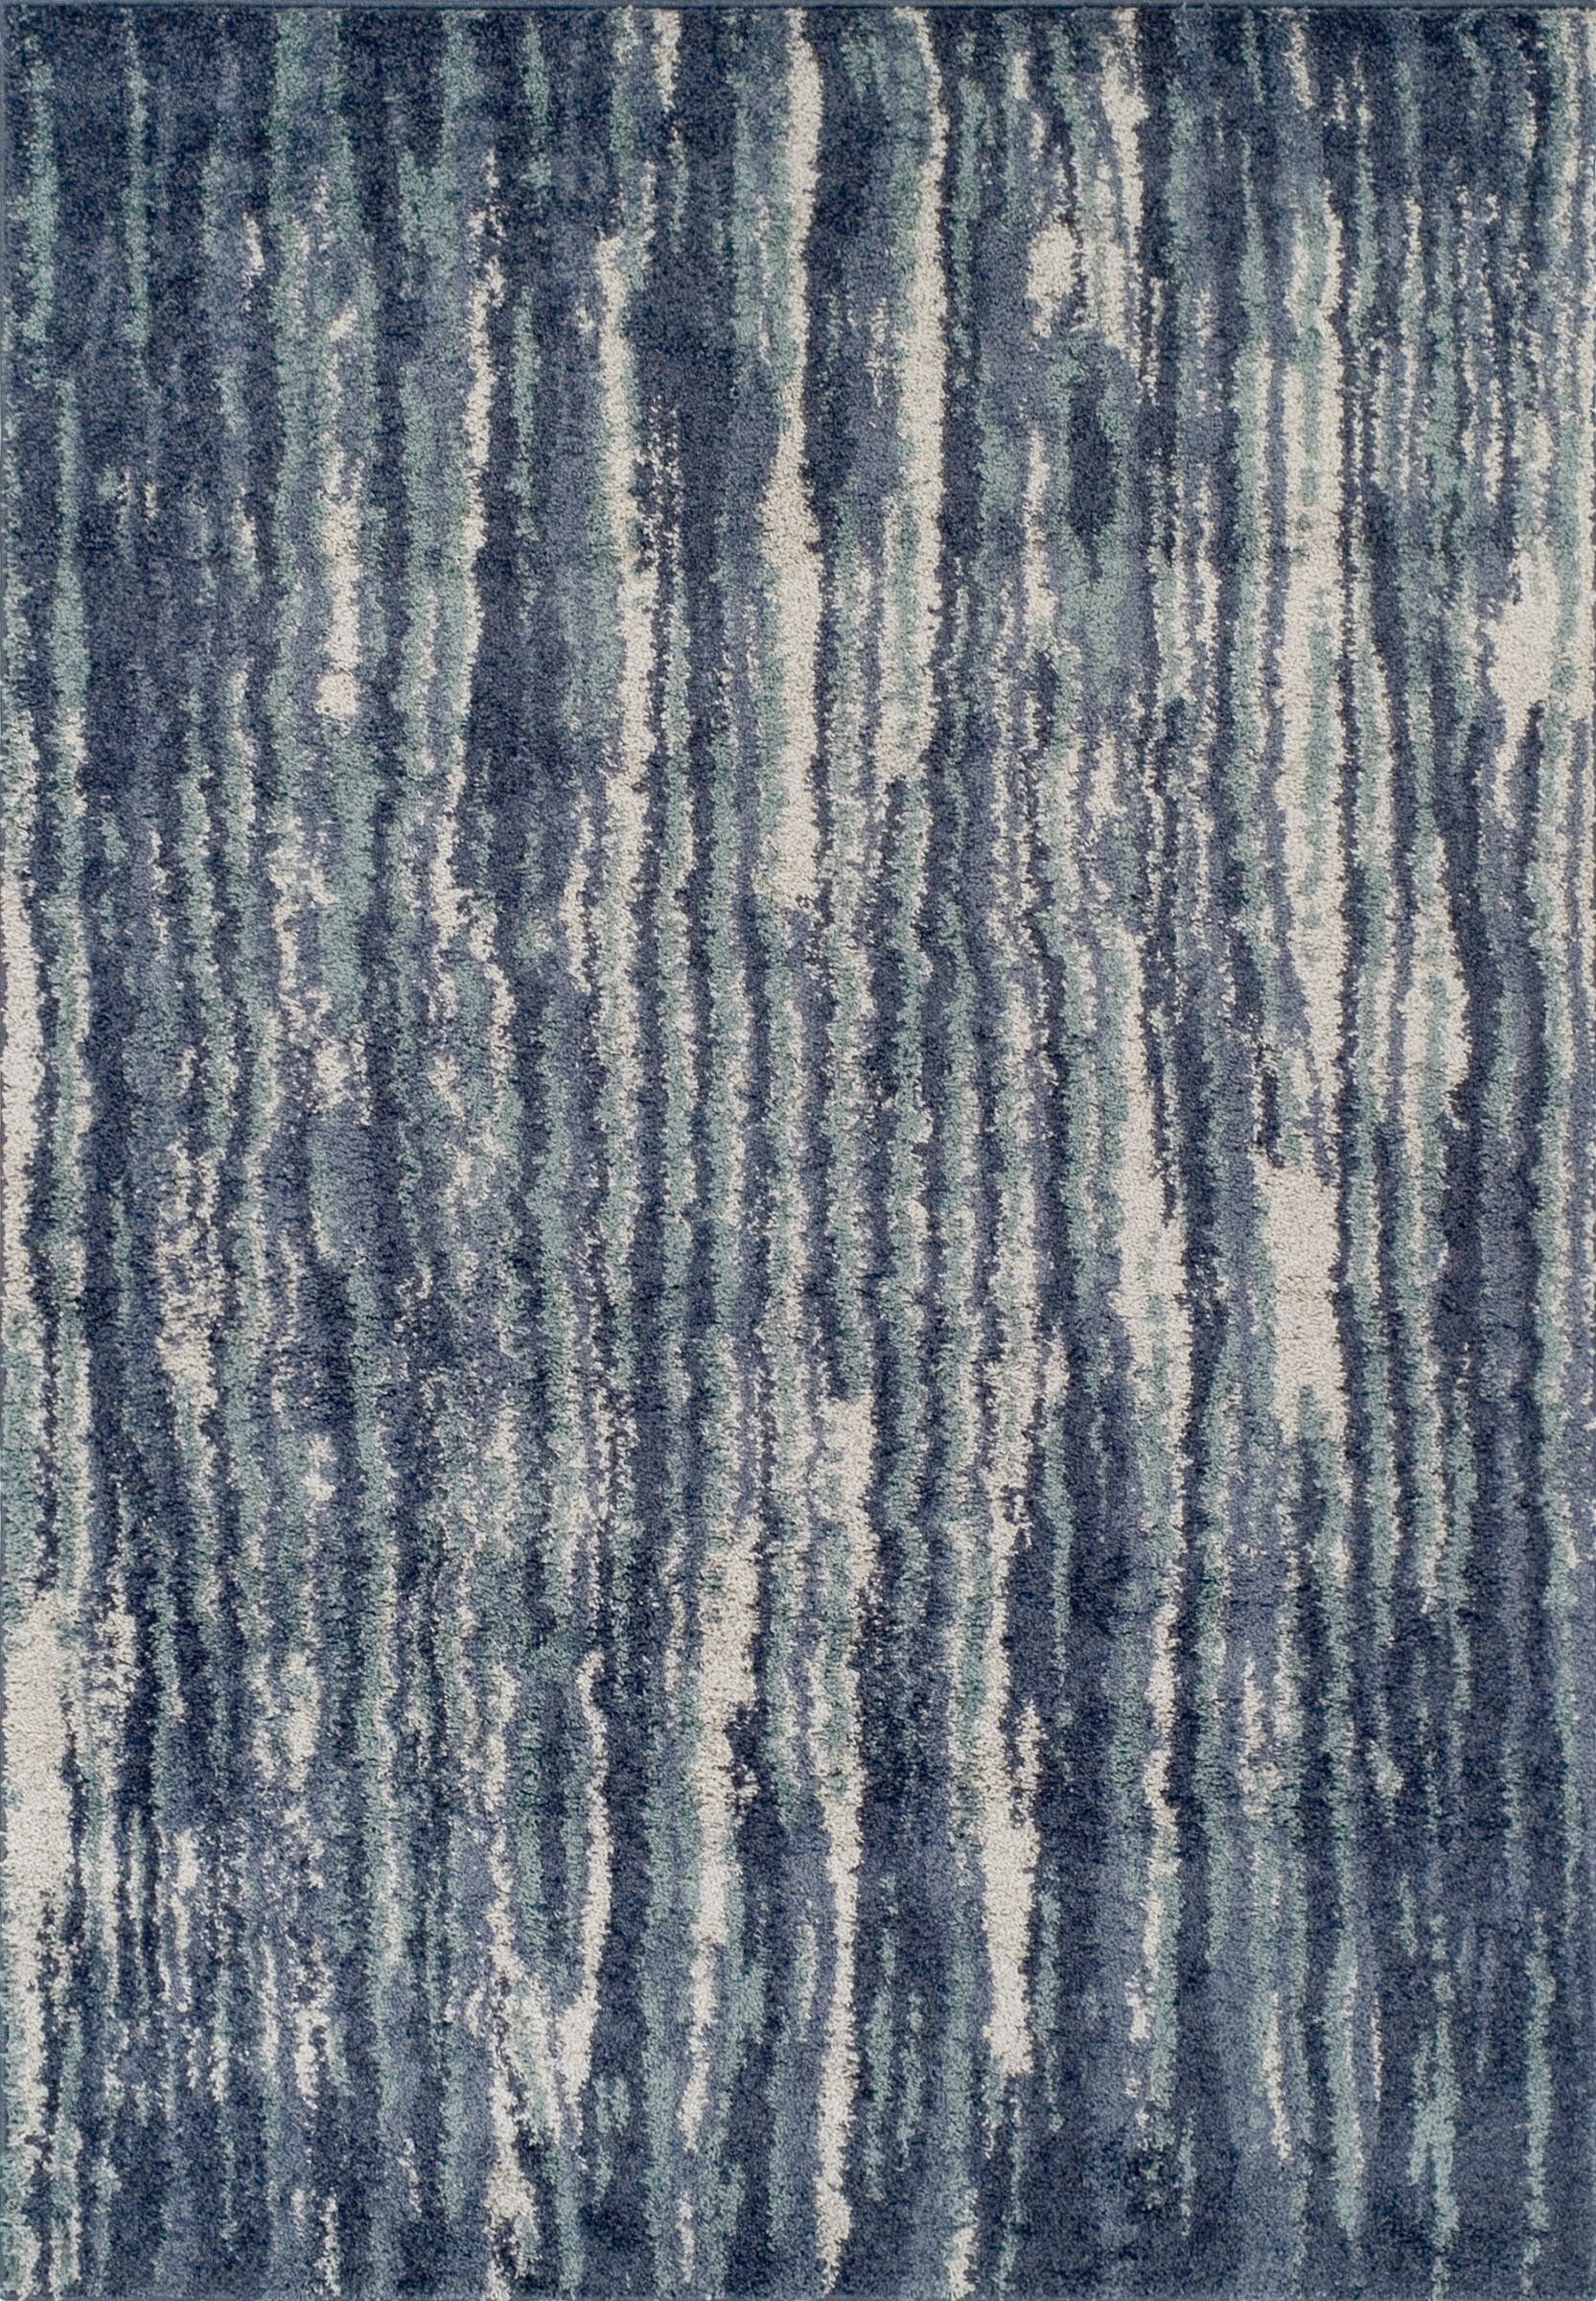 Williston Forge Samella Abstract Blue Gray Area Rug Reviews Wayfair